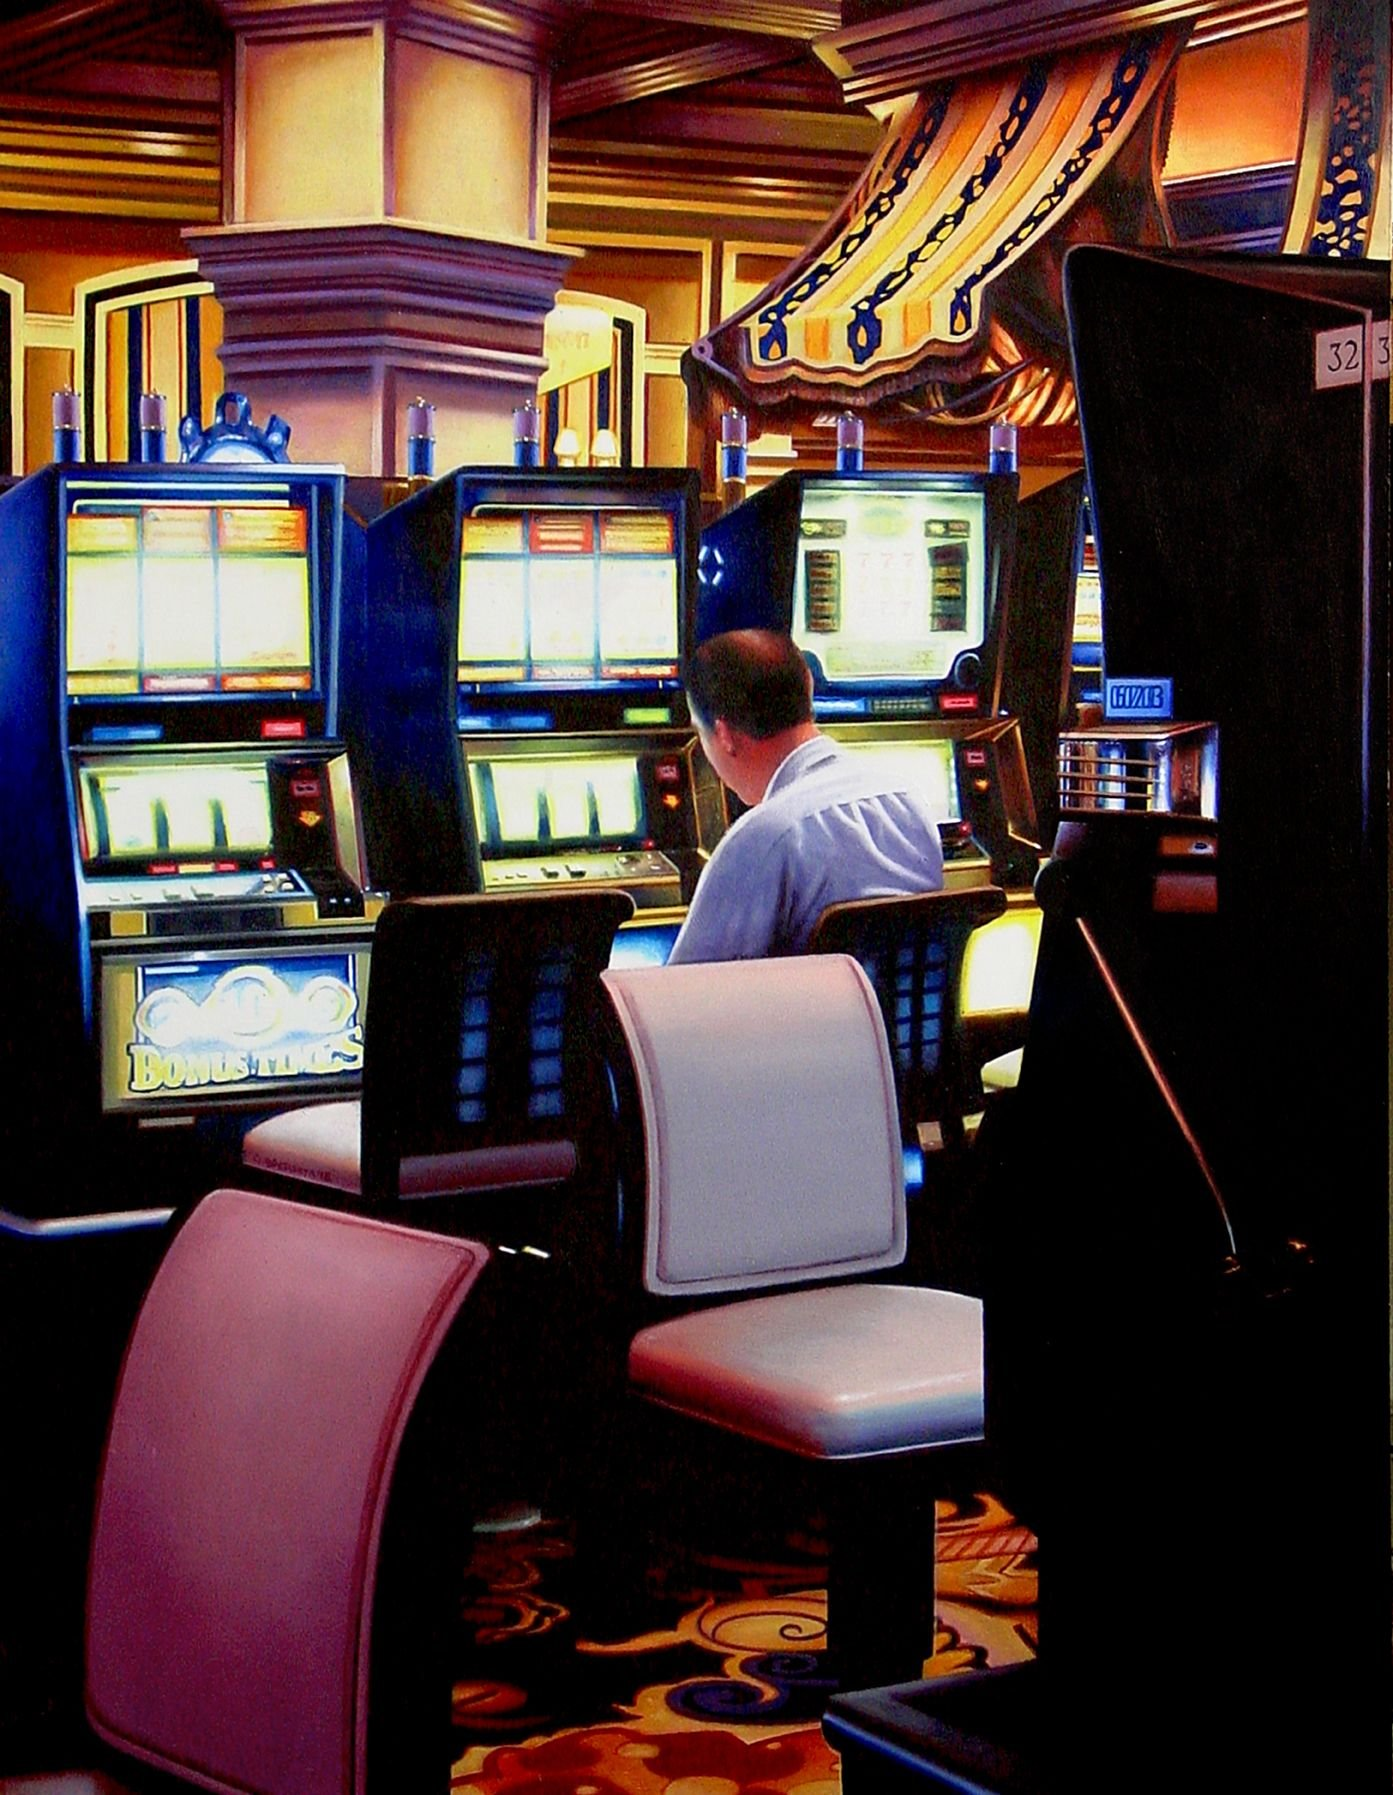 Las Vegas Slot Machines by